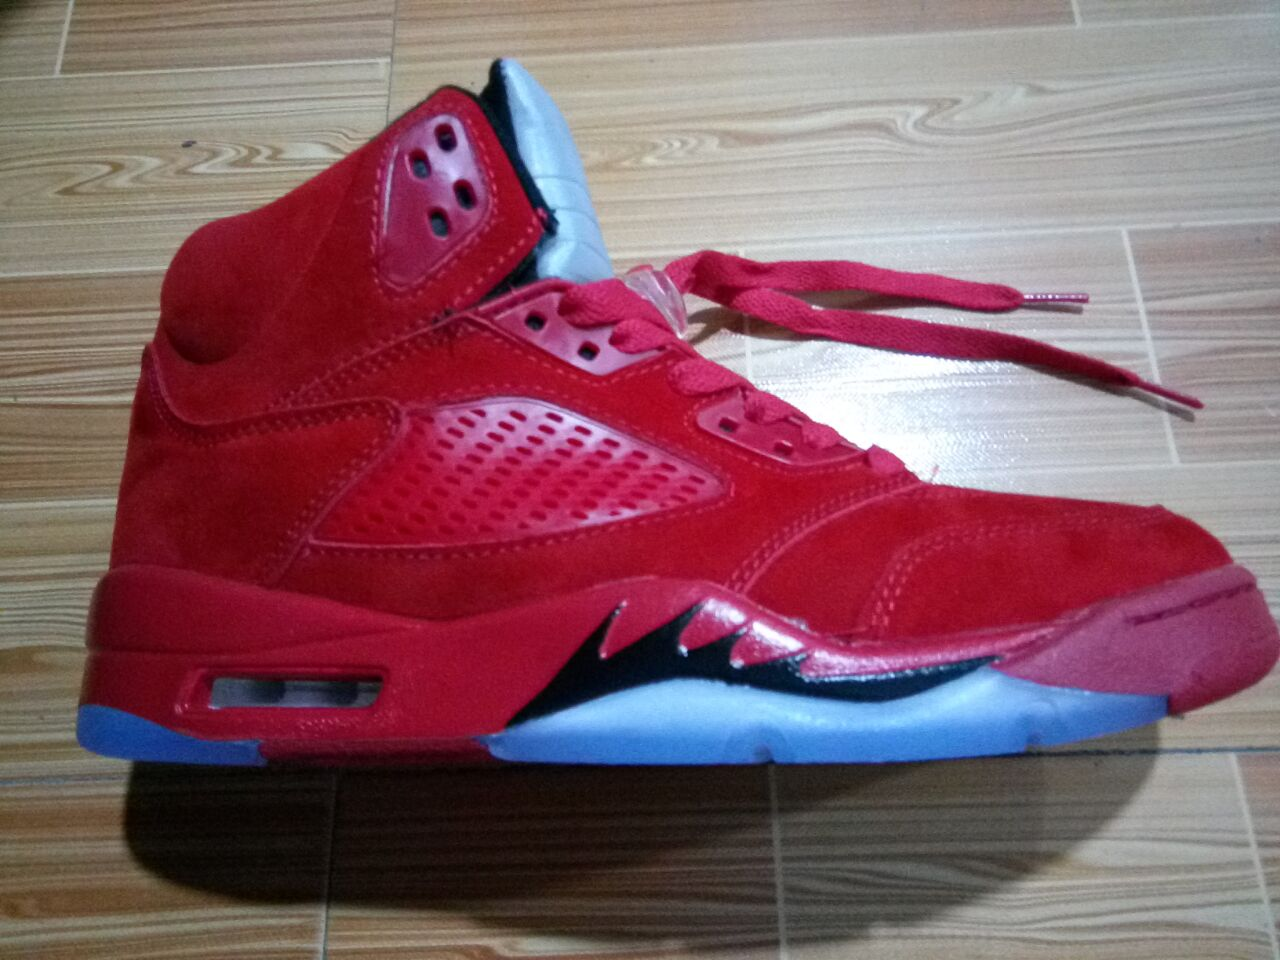 Flight Suit 5s Raging Bull Red Suede Ice Blue Suede 5s ...